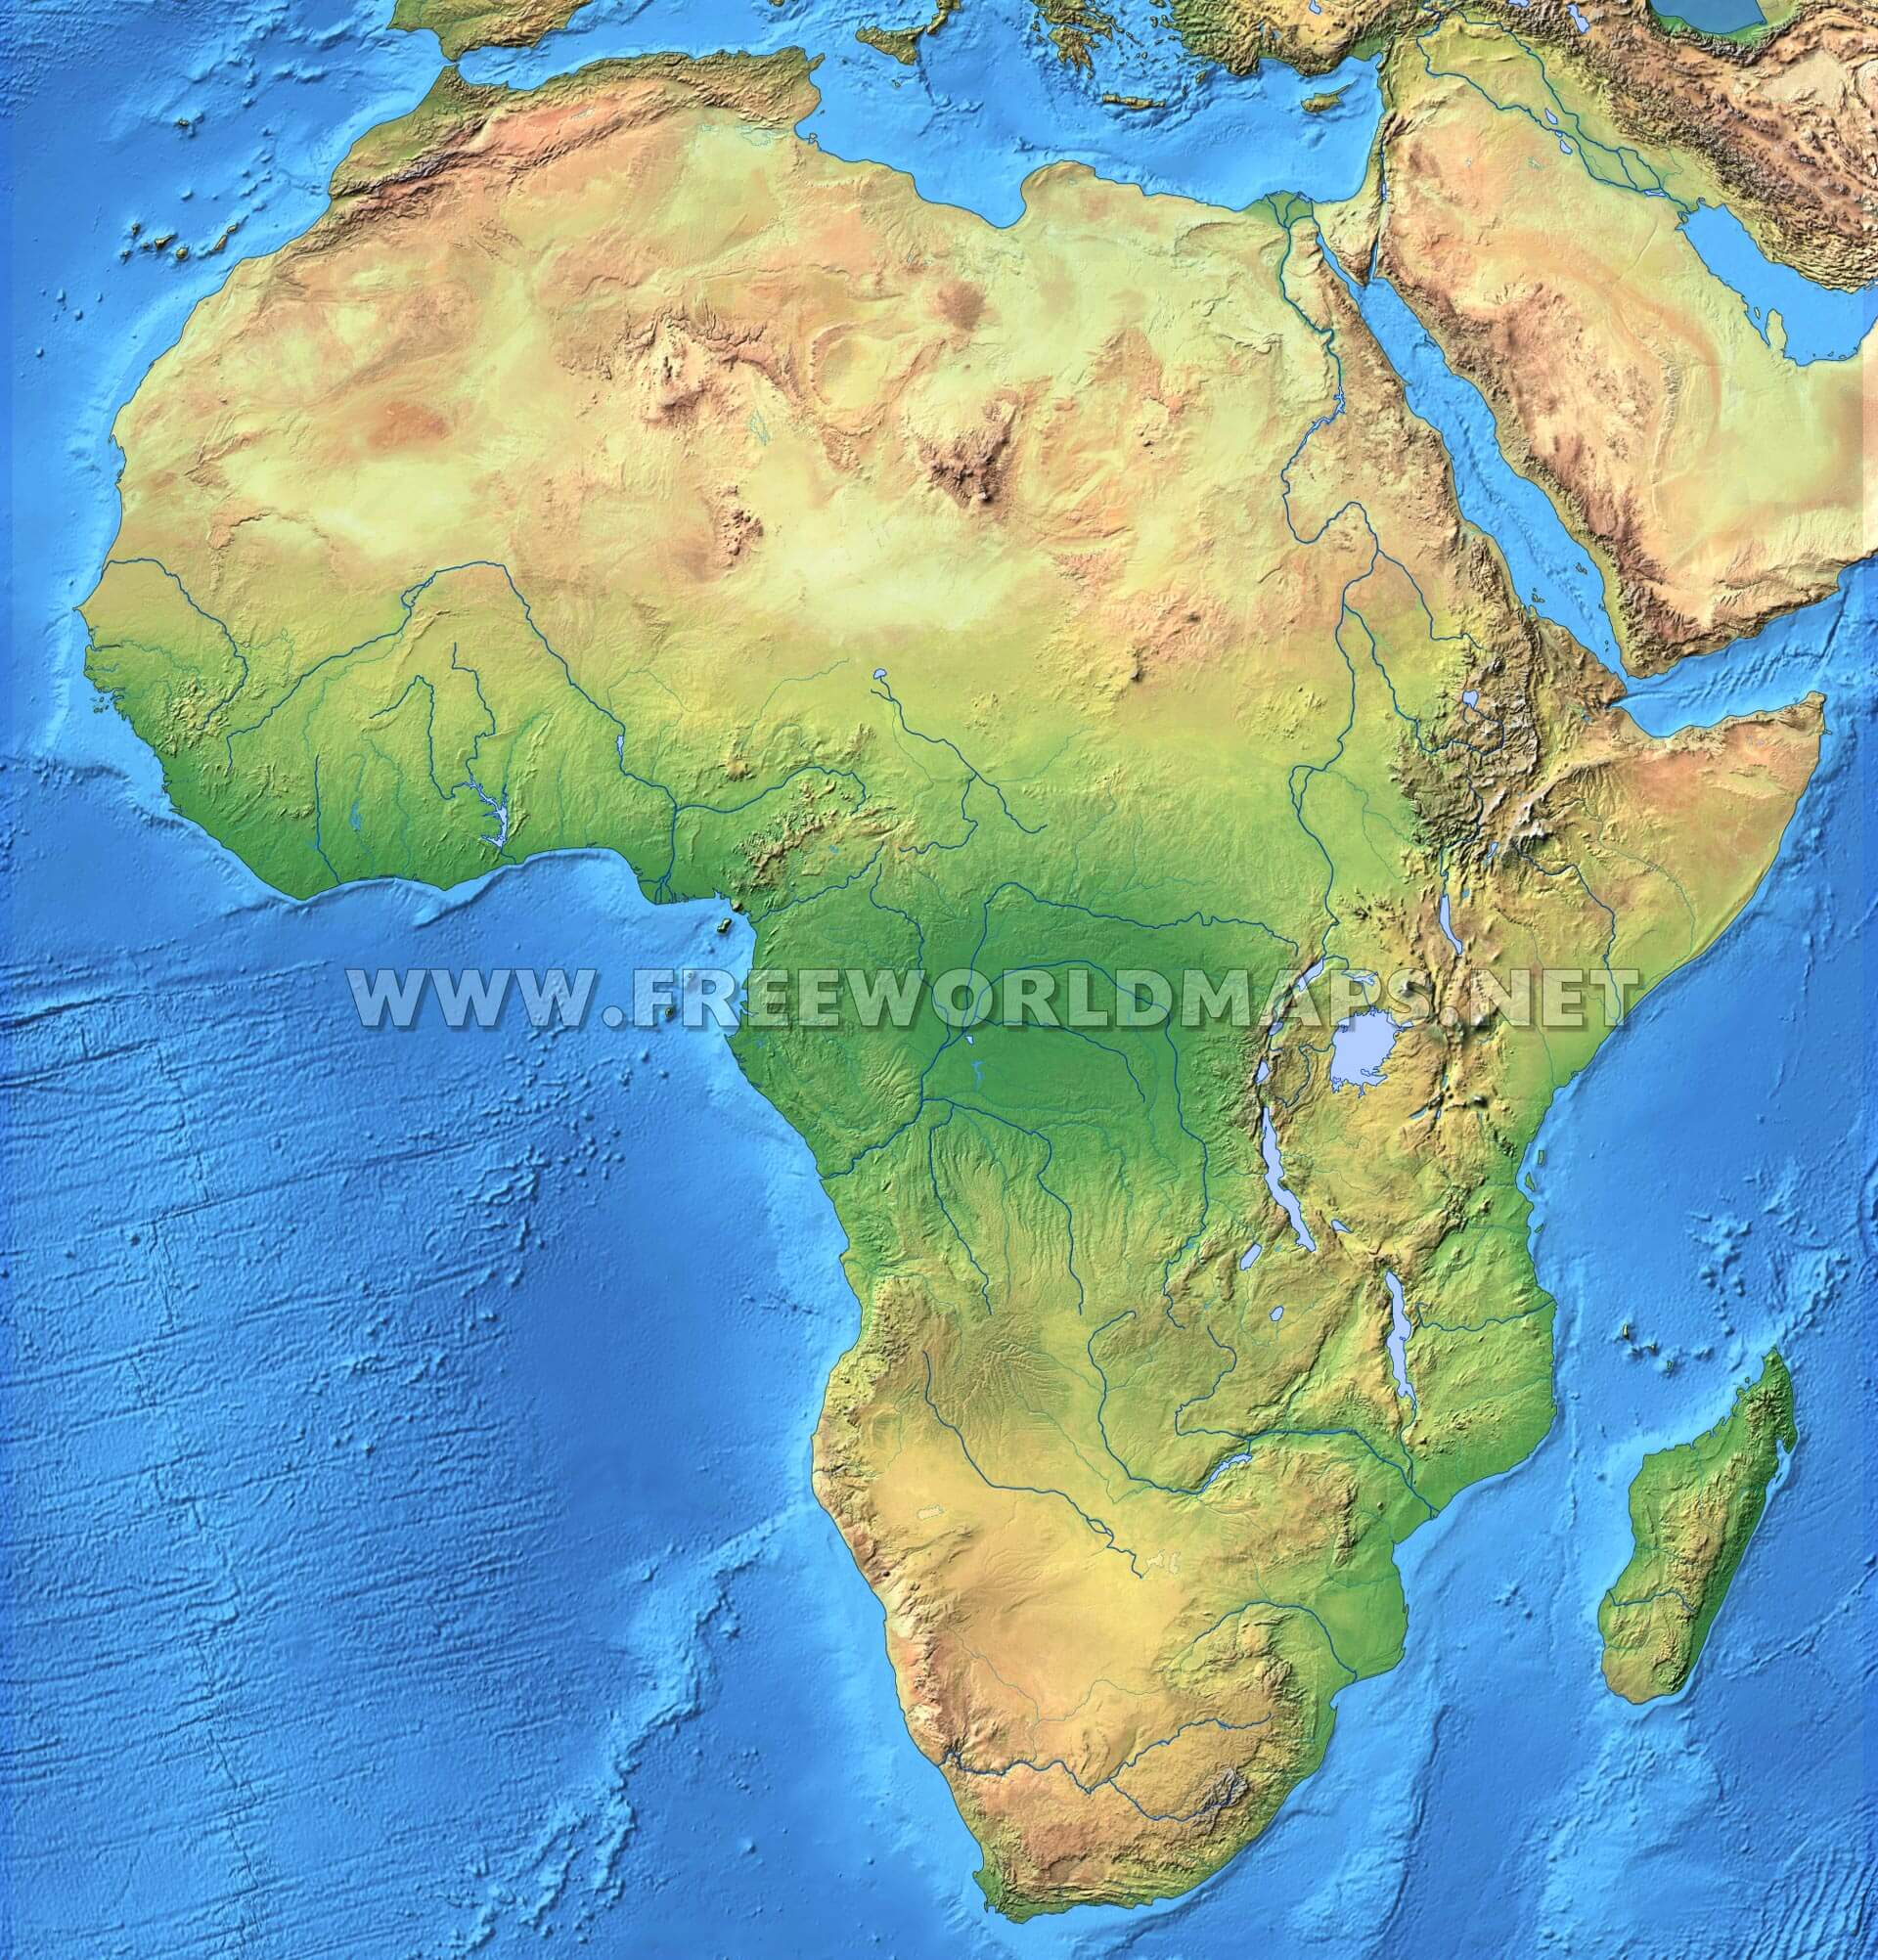 africa-hd-map Images Physical Map Of Gabon on physical map of guadeloupe, physical map of the dominican republic, physical map of u.s.a, physical map of polynesia, physical map of former ussr, physical map of africa, physical map of republic of congo, physical map of luxemburg, physical map of central african republic, physical map of st. thomas, physical map of n. america, physical map of north east asia, physical map of cabo verde, physical map of baltic states, physical map of new zeland, physical map of nauru, physical map of lake tanganyika, physical map of tokelau, physical map of antigua and barbuda, physical map of cape of good hope,